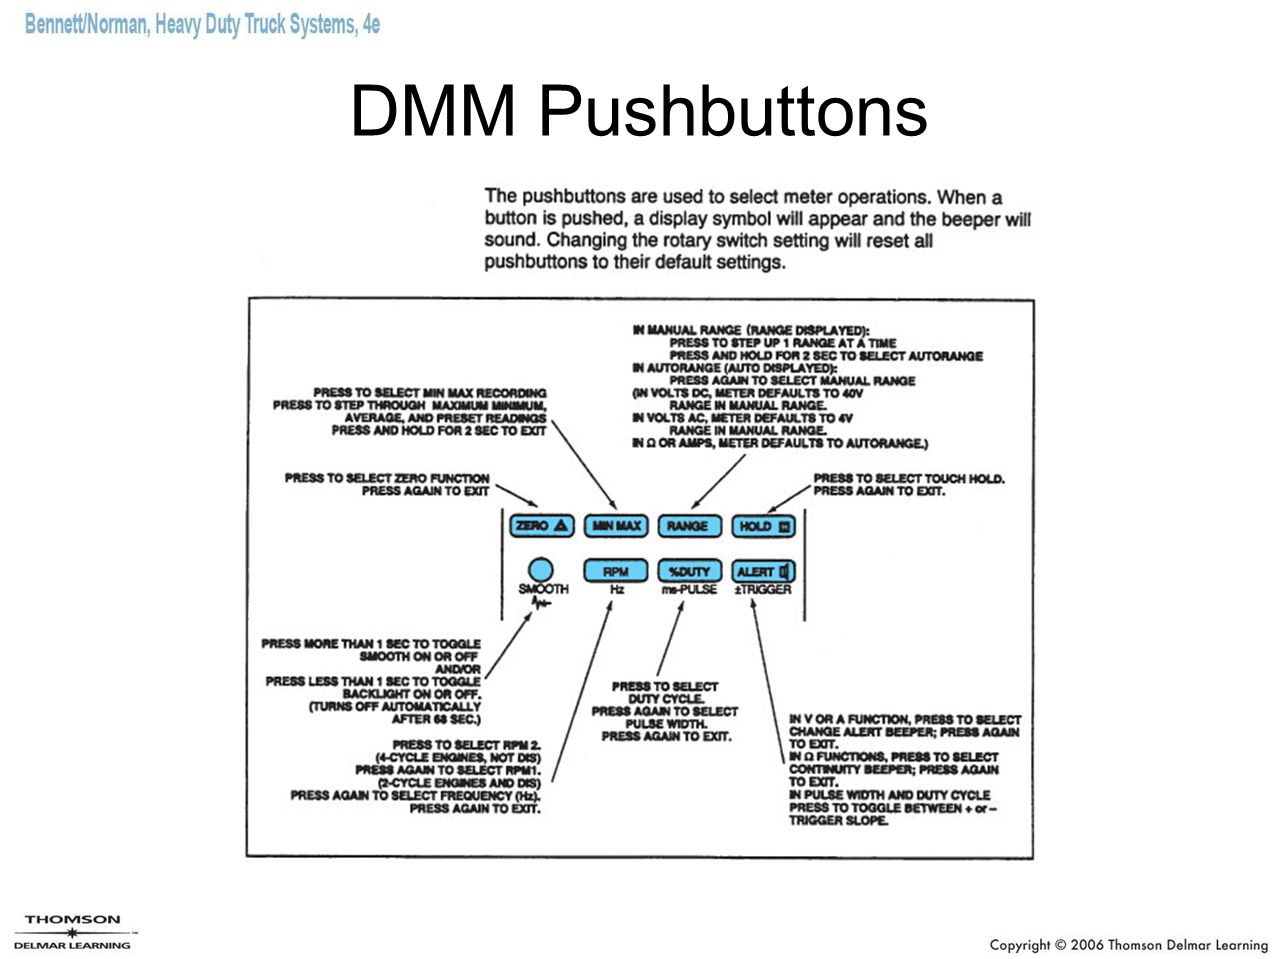 DMM Pushbuttons